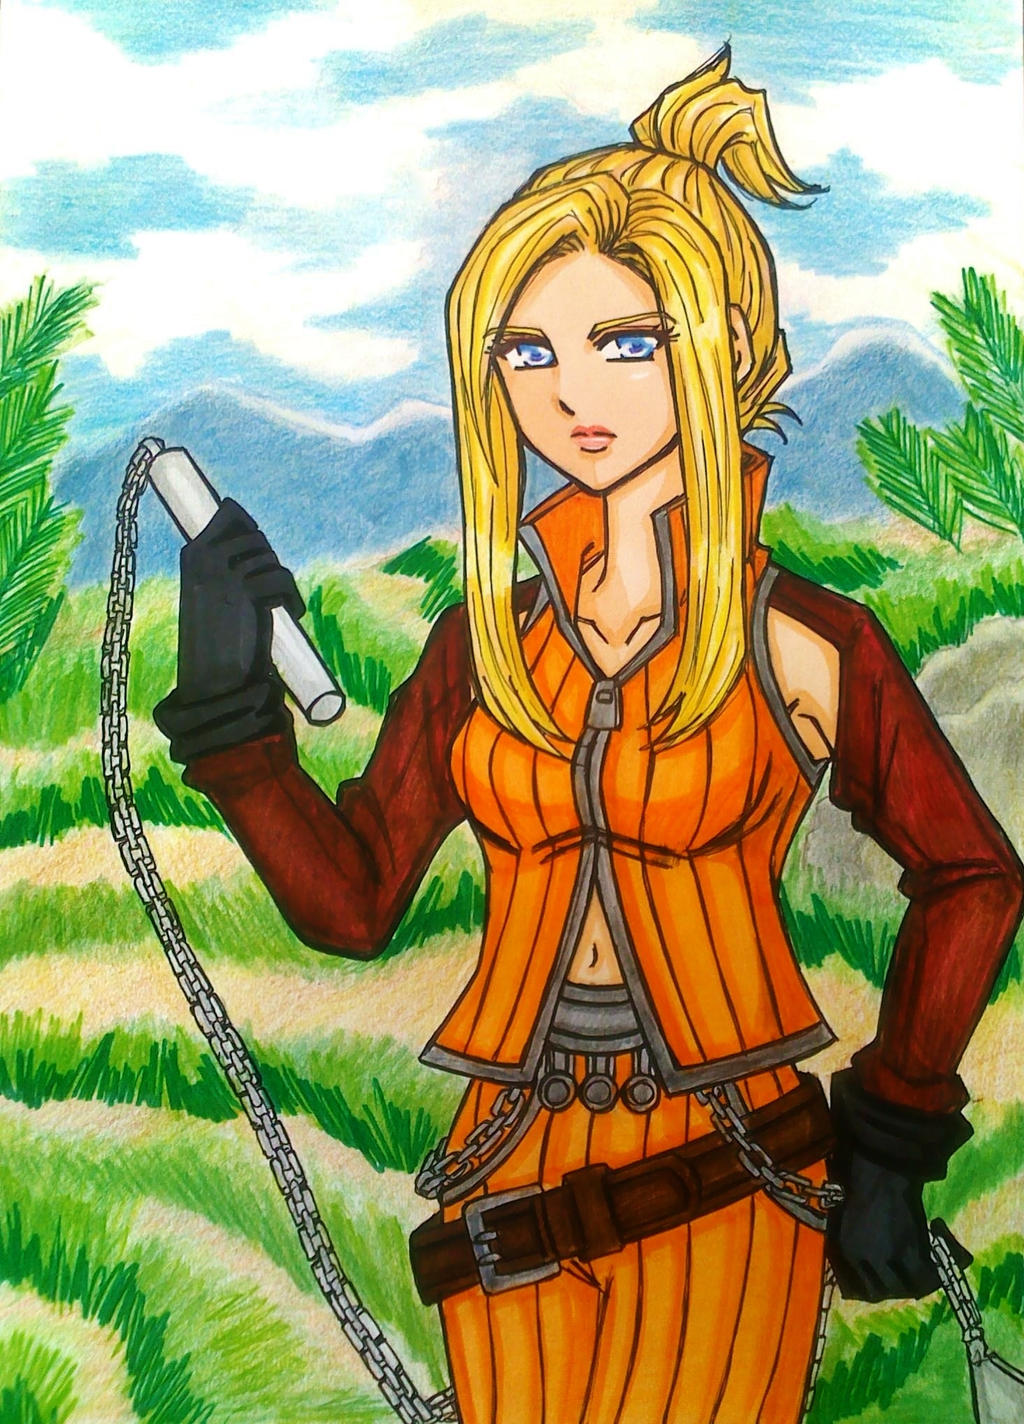 role of quistis trepe essay Quistis trepe from fanlore jump to: quistis is a main character in the square enix video game final fantasy viii a teaching role only seemed natural for.